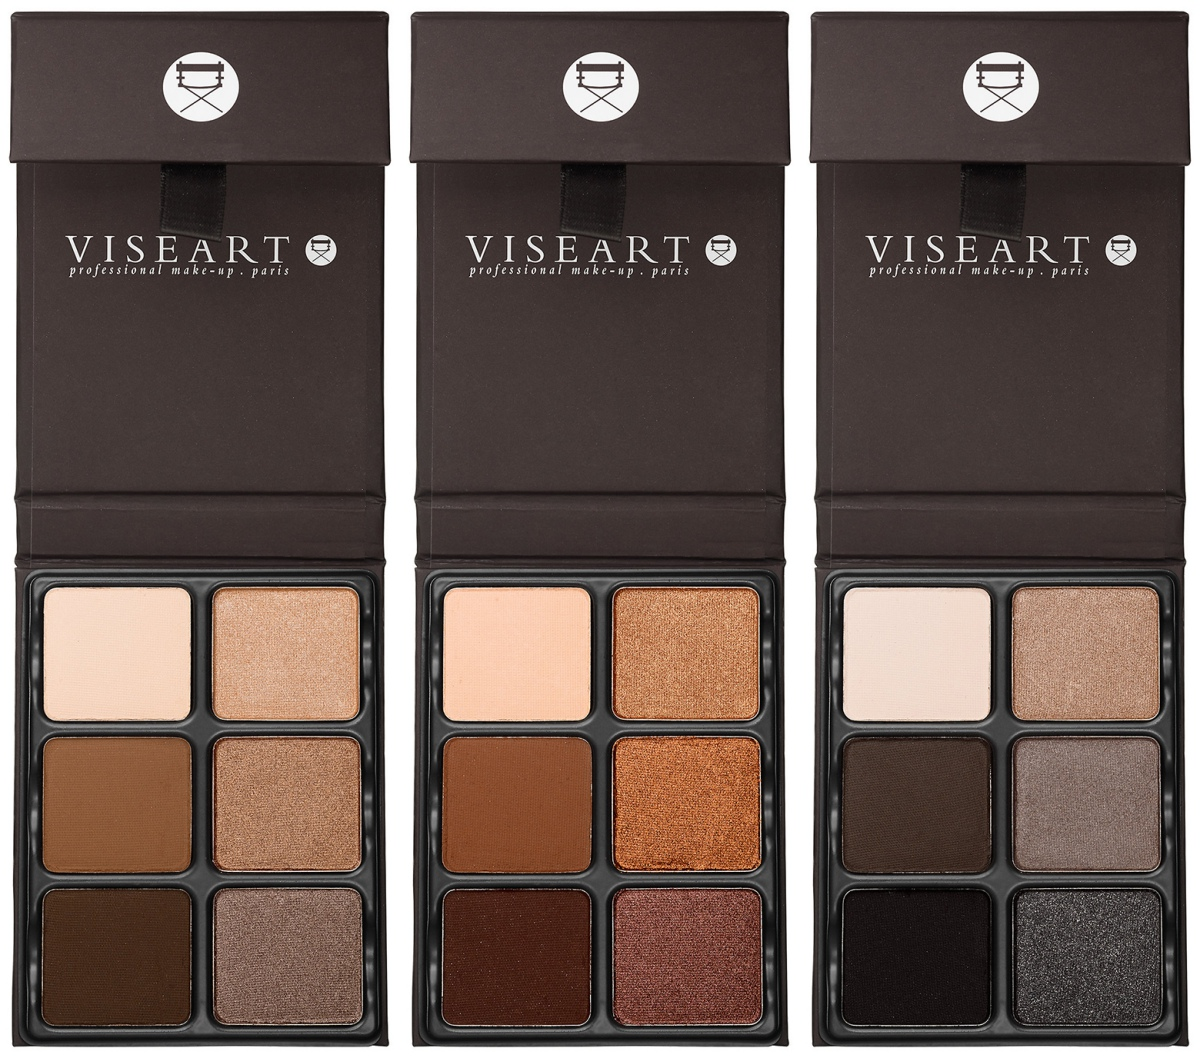 Viseart Theory Palette Swatches